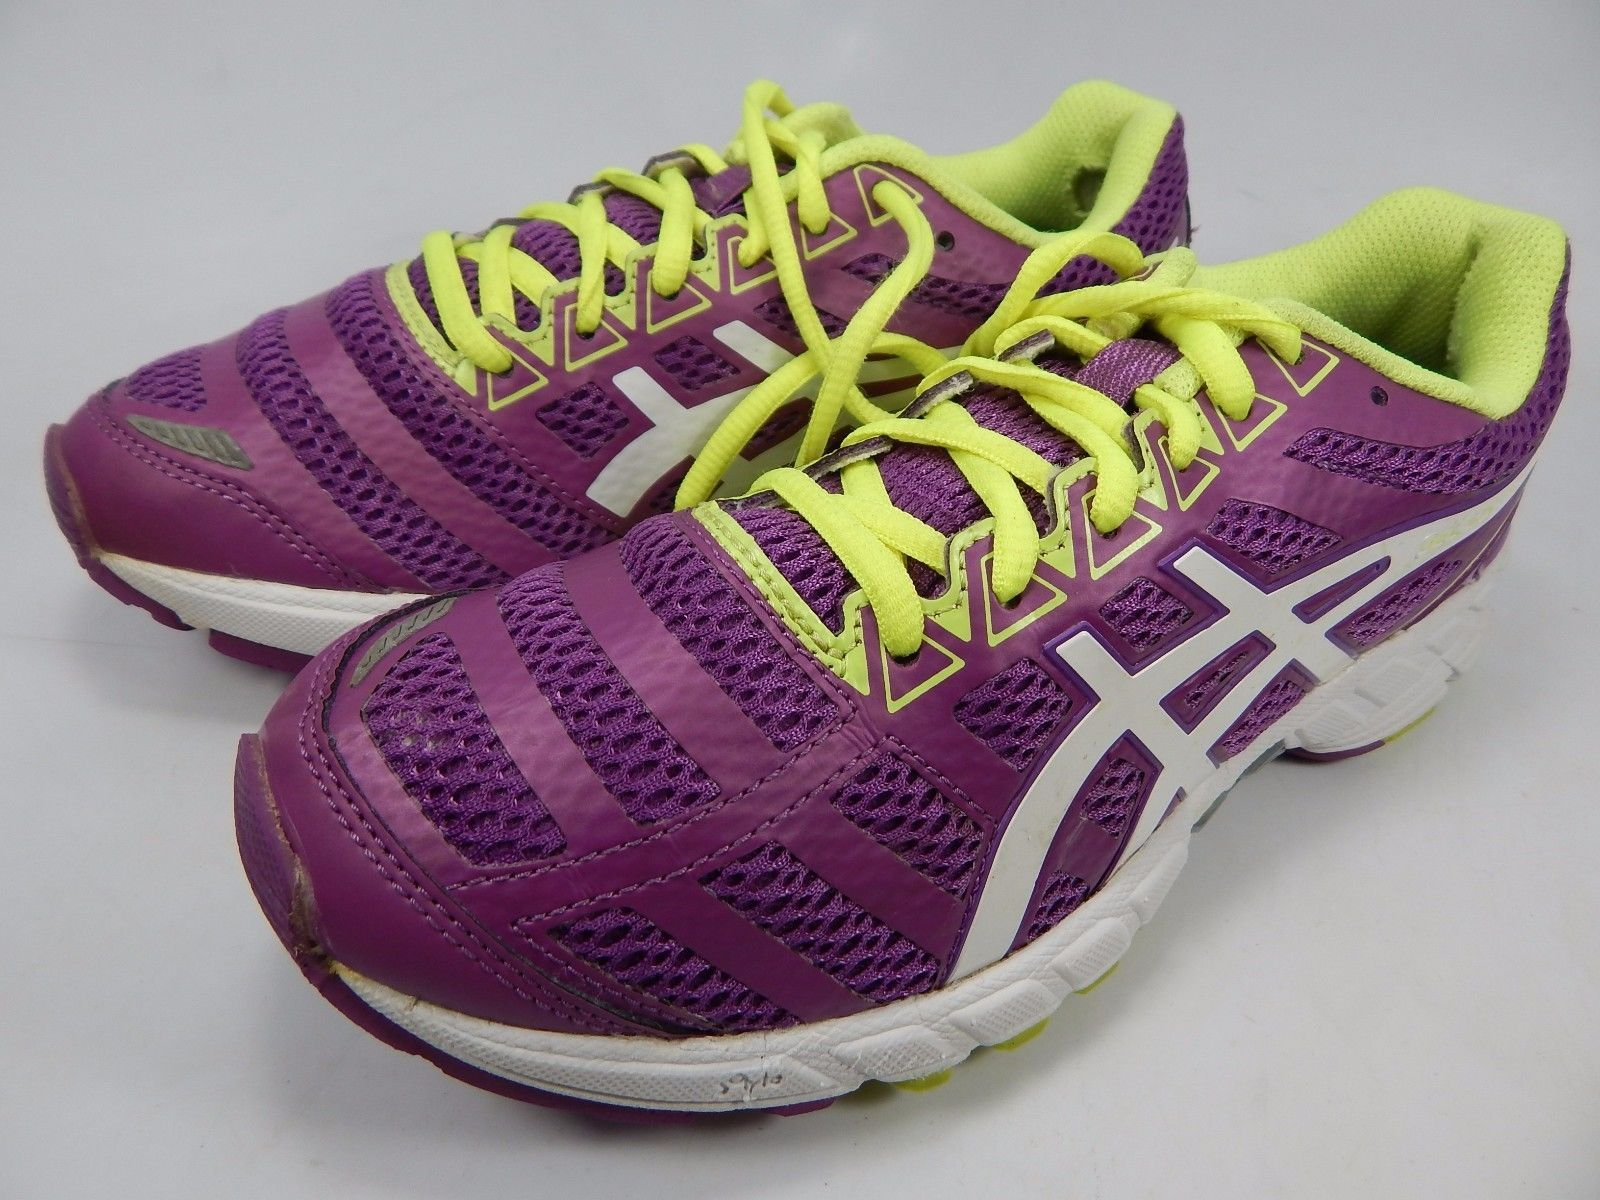 Asics Gel DS Trainer 18 Women's Running Shoes Size US 6.5 M (B) EU 37.5 T355N